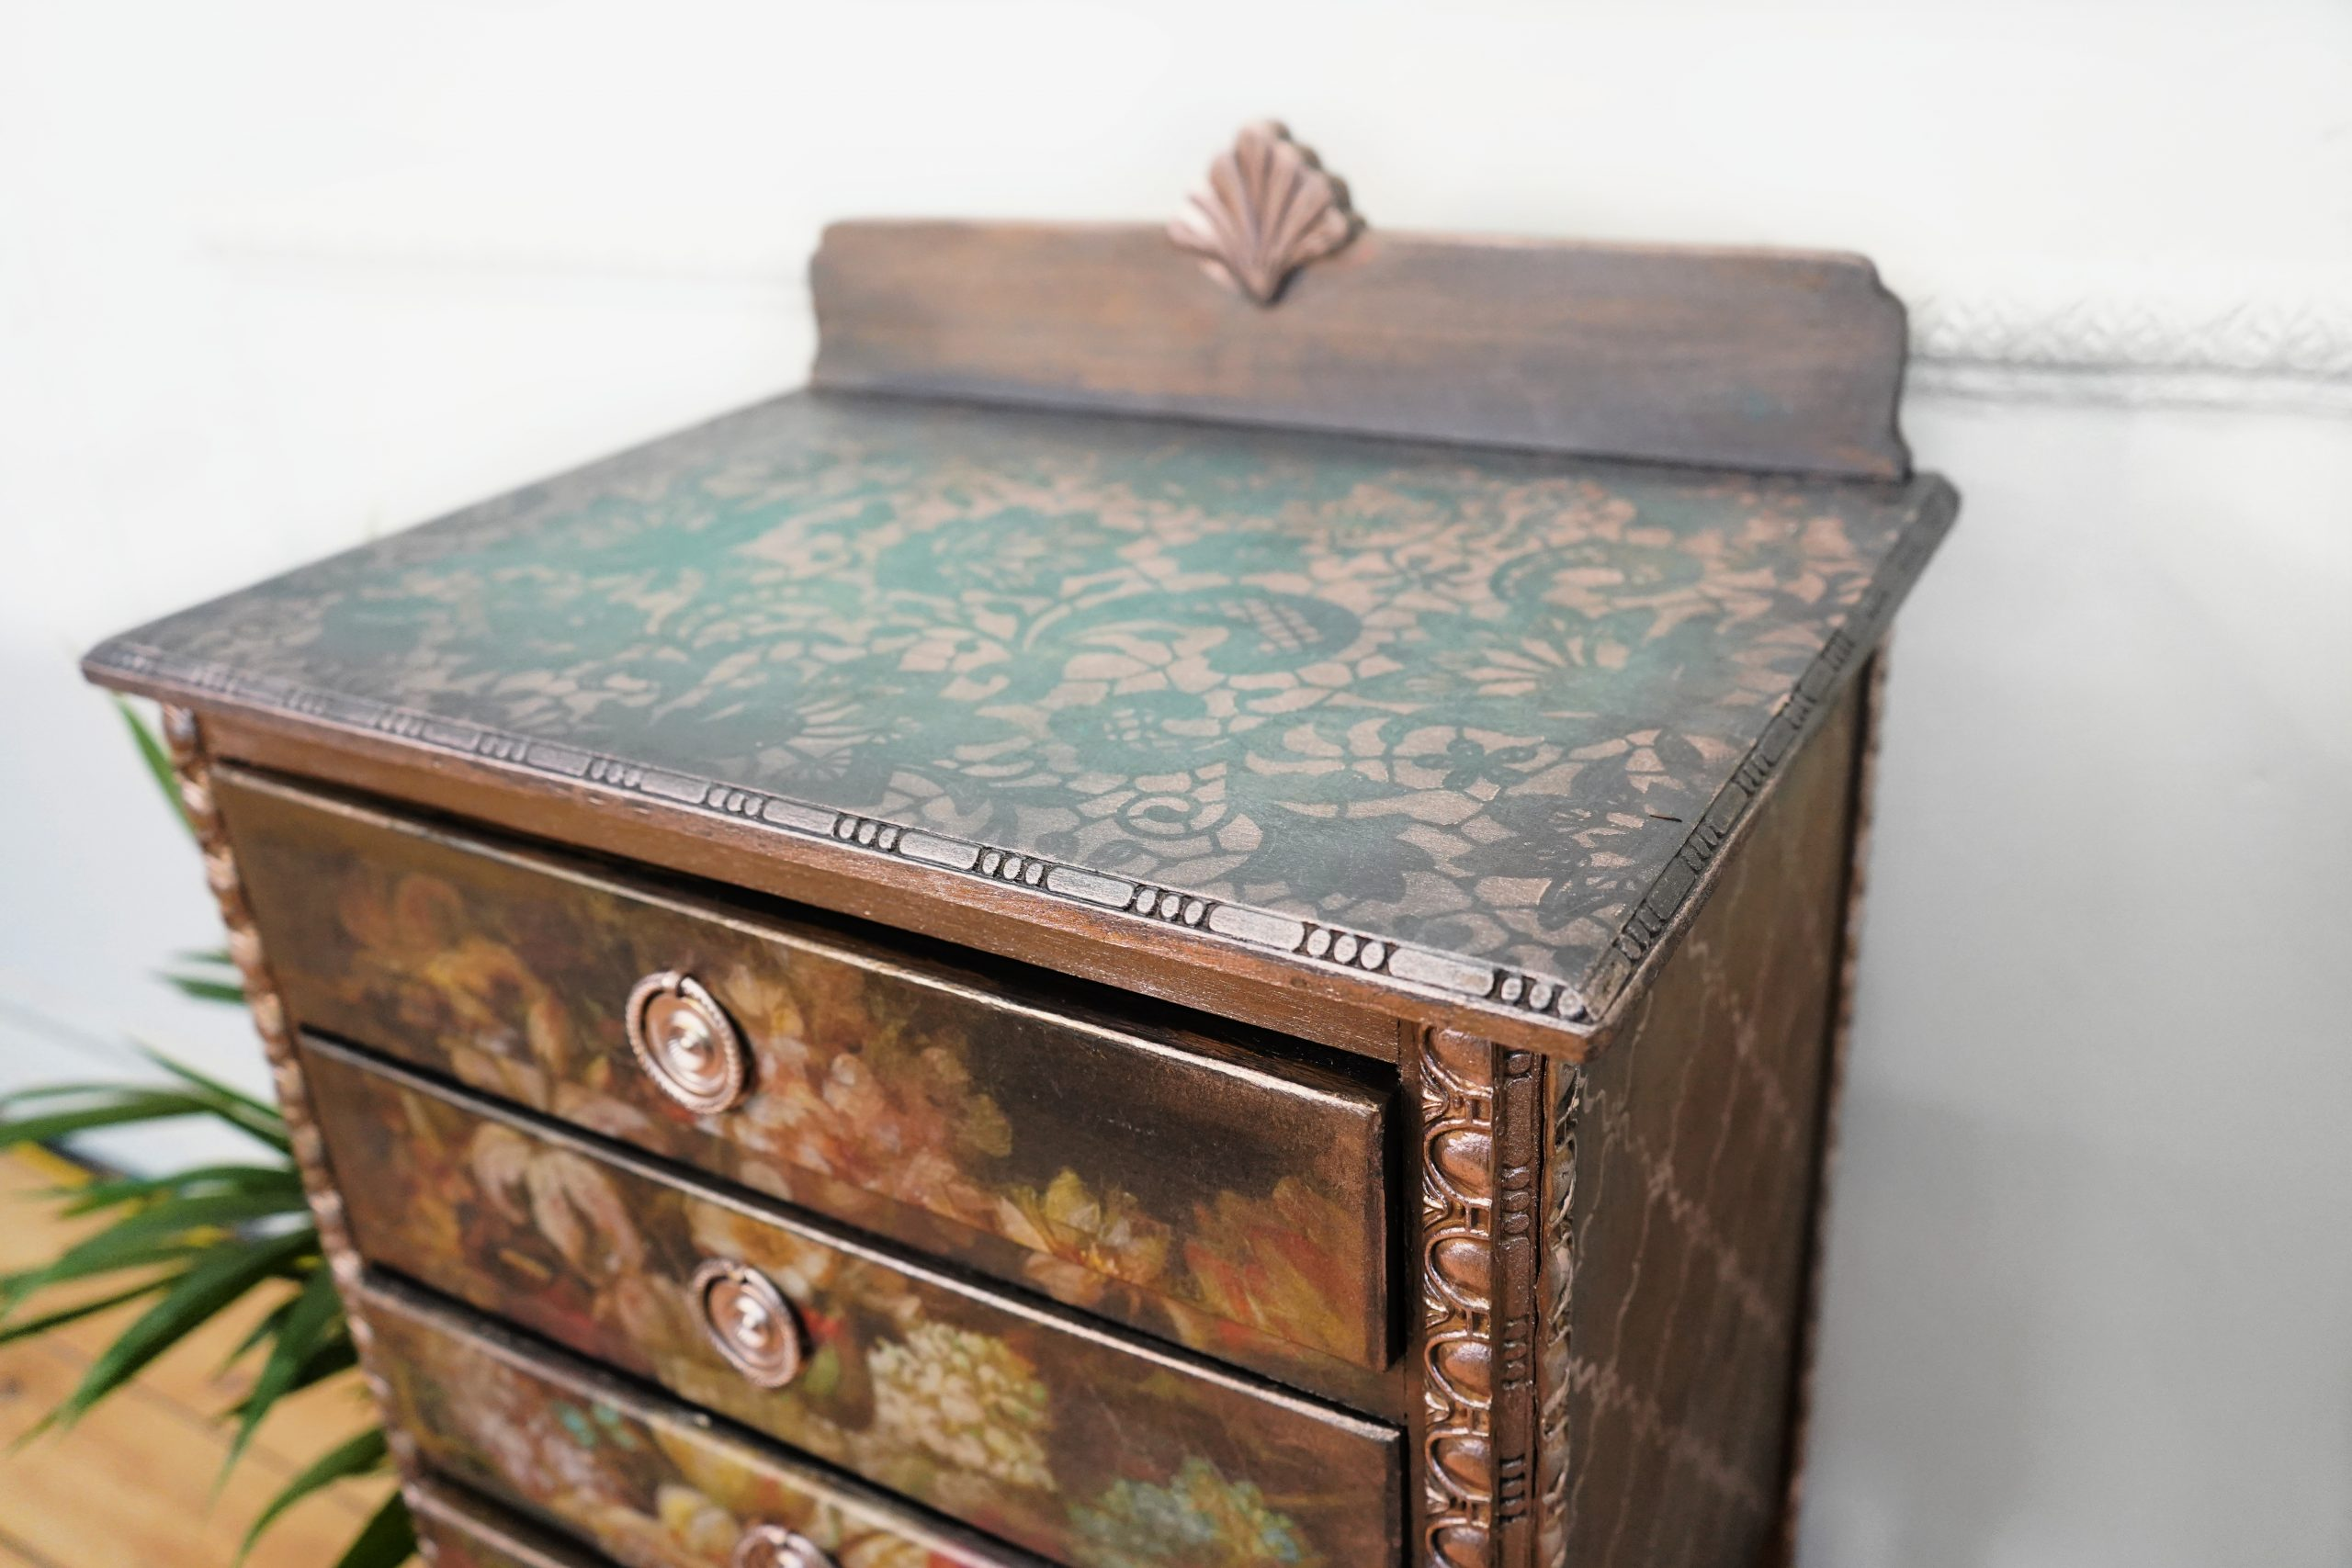 A set of drawers with decoupage on the front and washed with posh chalk pastes in gold and green. Rose gold pigments pick out the finer details of the woodubend trims on the side.